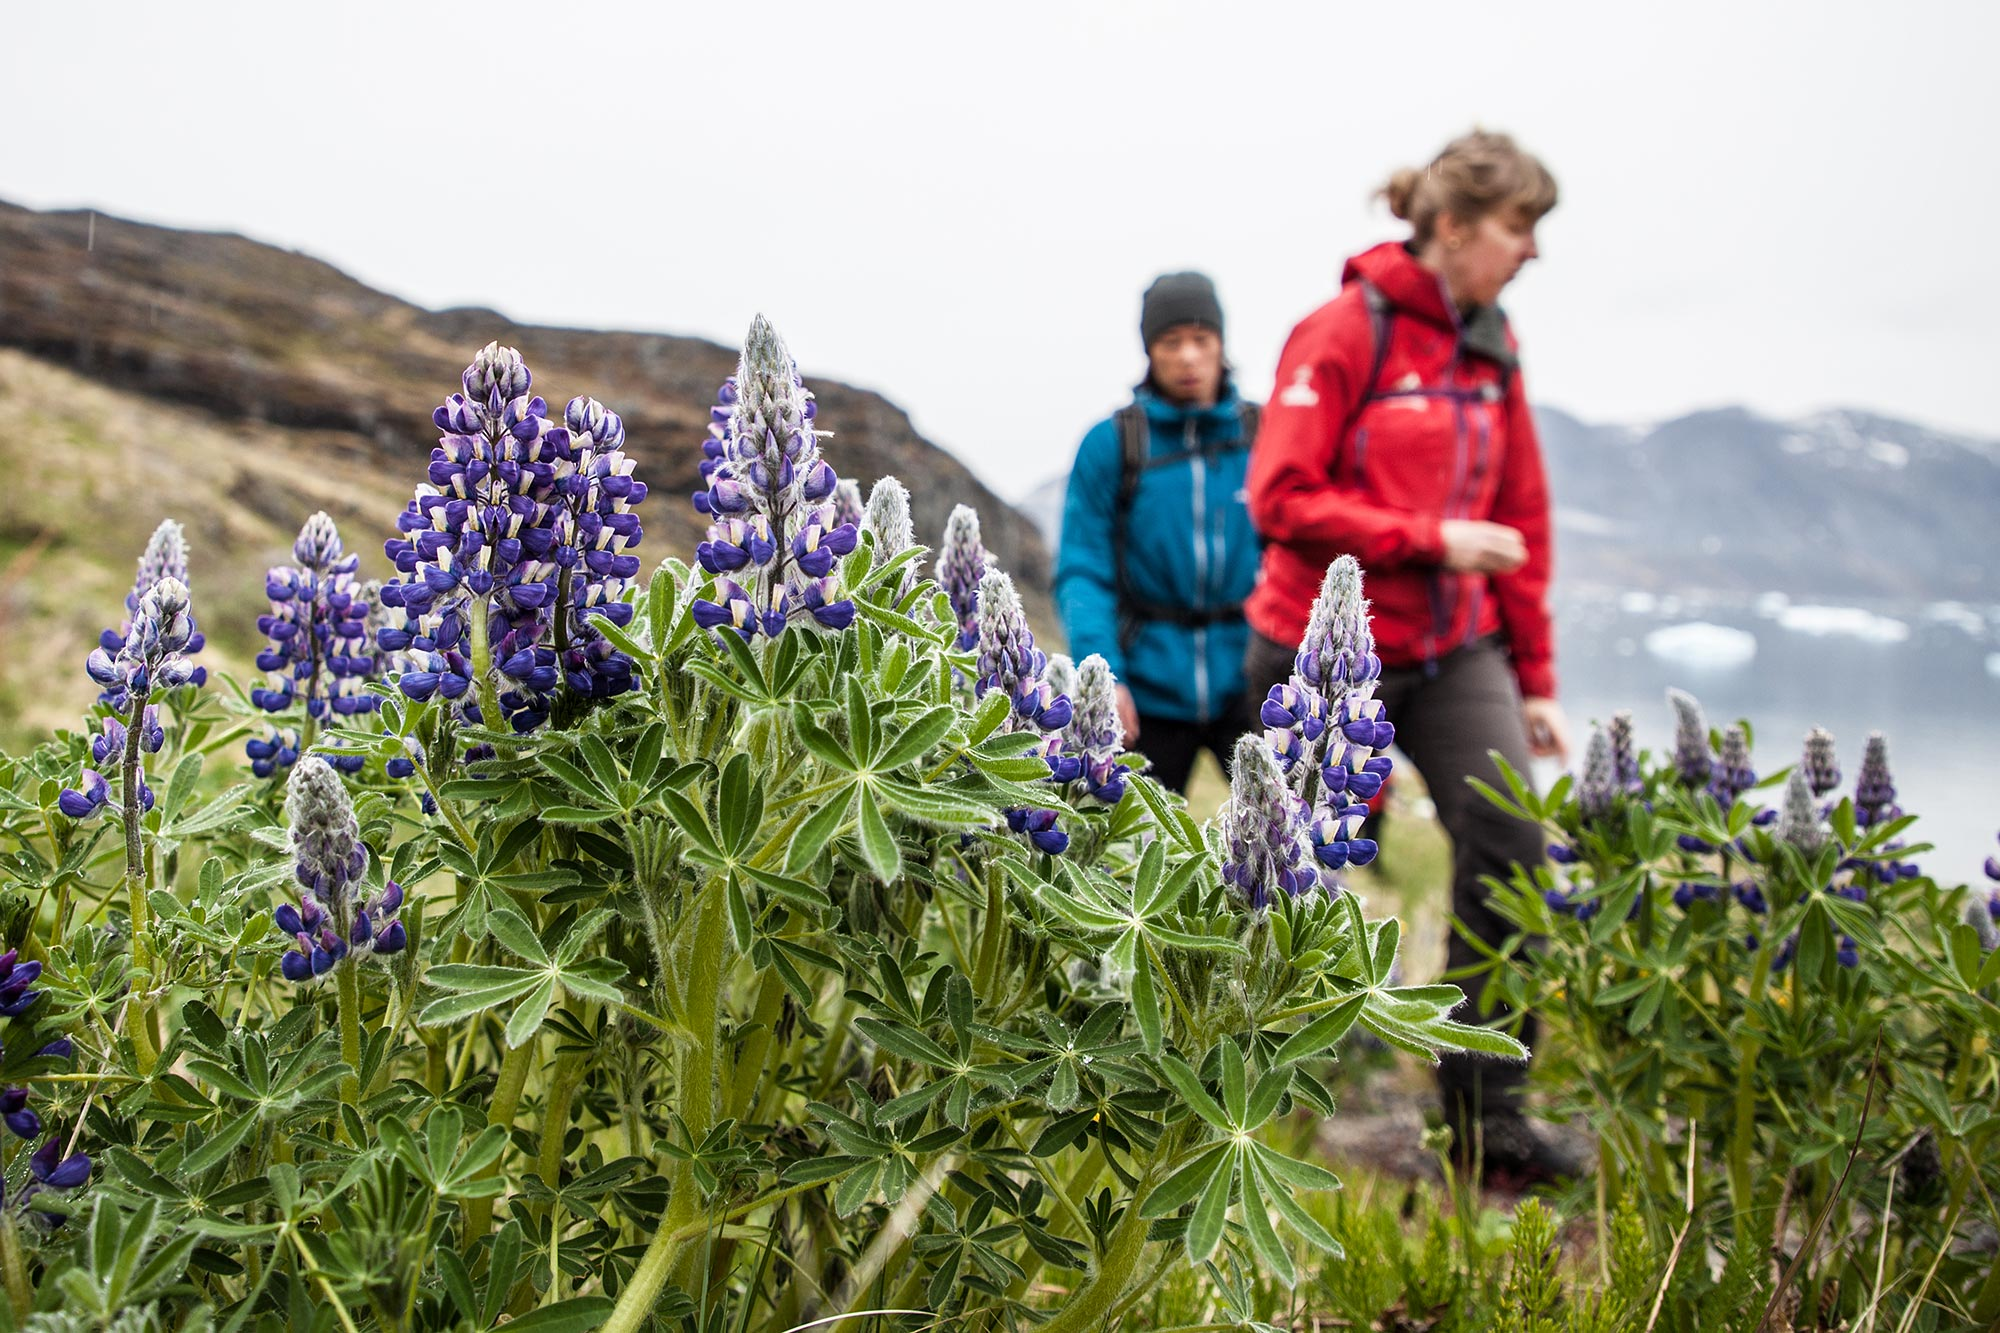 Hiking in the flora in Greenland